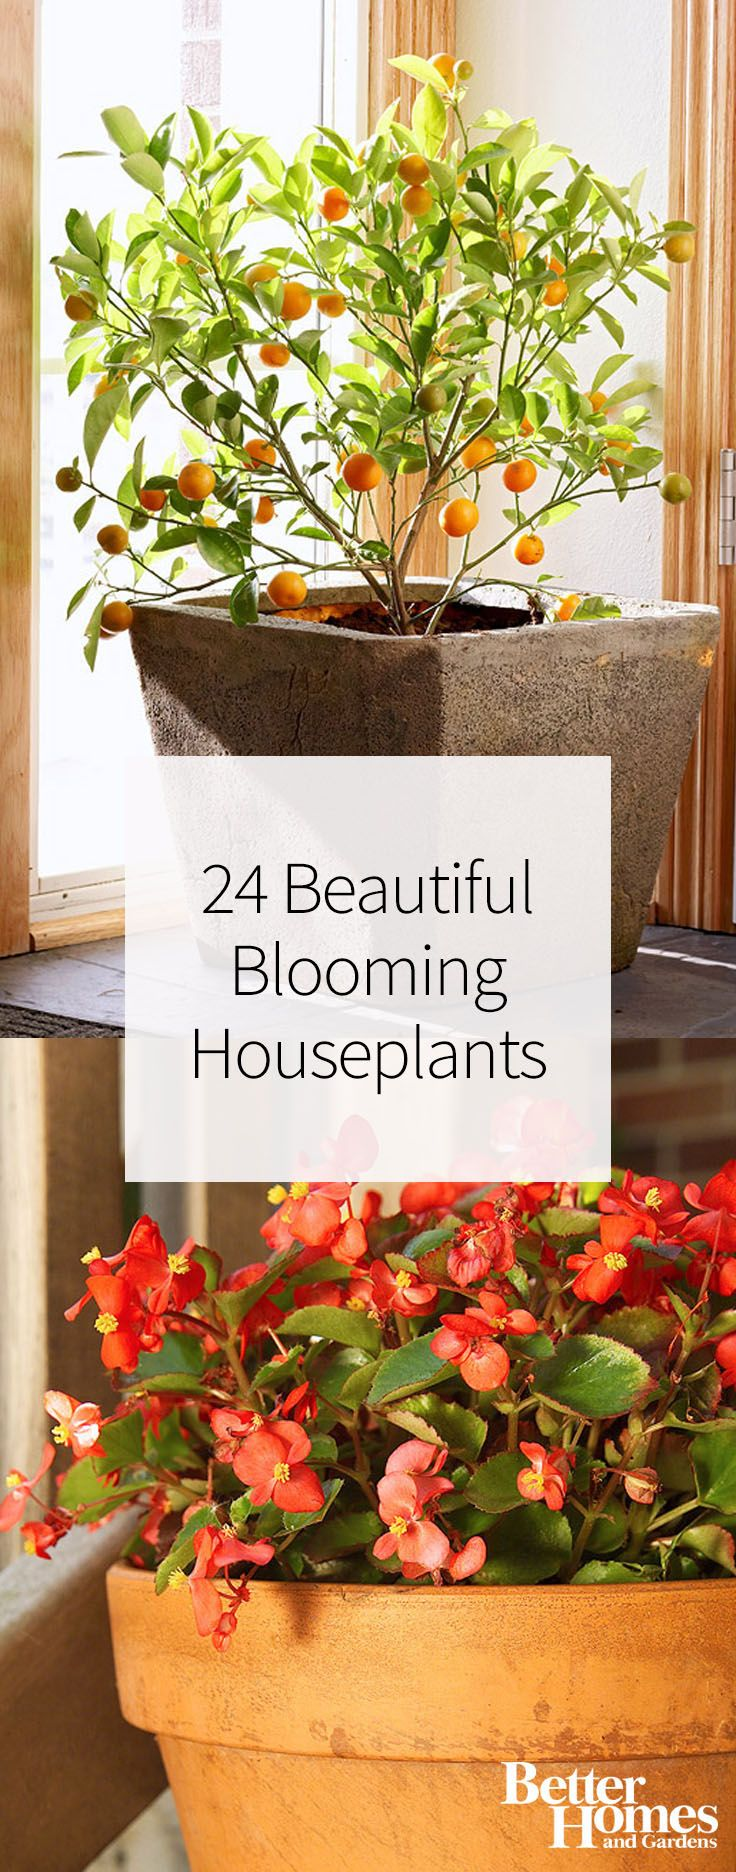 Looking to bring a bit of nature into your house this year? Try some of our favorite indoor plants, which include African violets, hibiscus, jasmine, kaffir lily, geraniums and begonias. Live flowers and foliage make the best home décor!